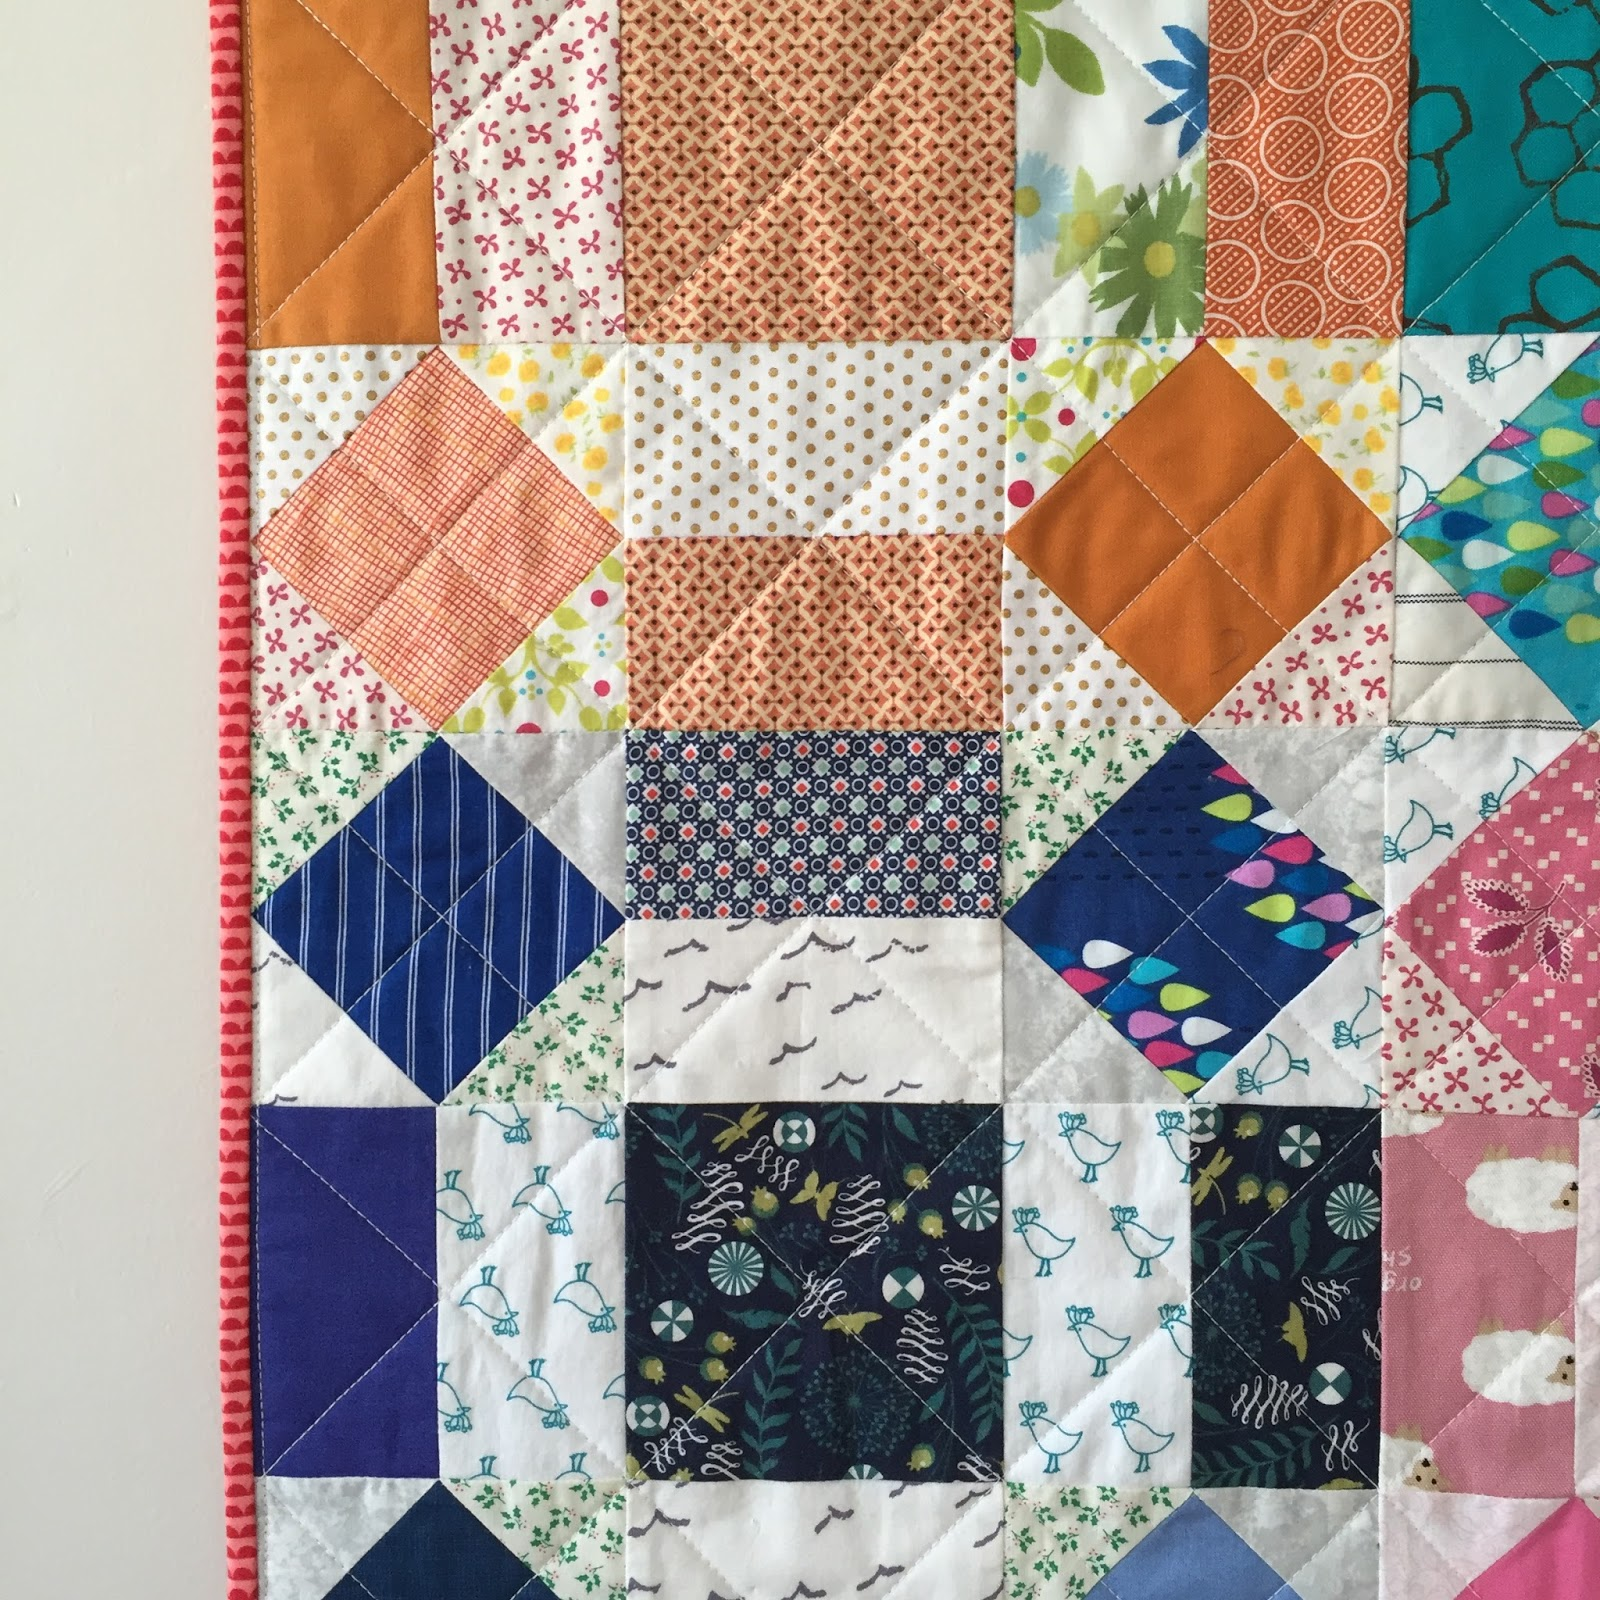 salty oat modern handmade quilts rainbow rolling stone throw quilt -  to the oversized log cabin and amish hourglass quilts i made for themaker's waypost (which opened this past saturday) i also completed asmall throw